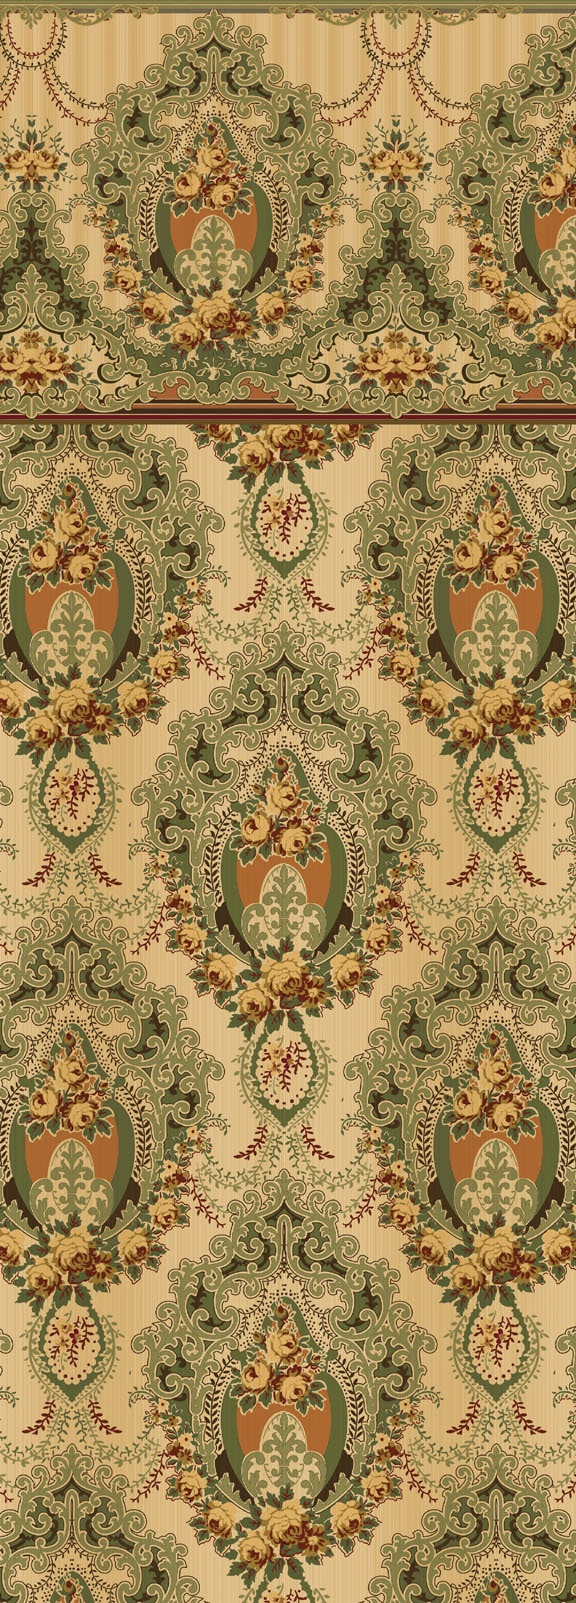 Avonly - Historic Wallpapers - Victorian Arts - Victorial Crafts - Aesthetic Movement